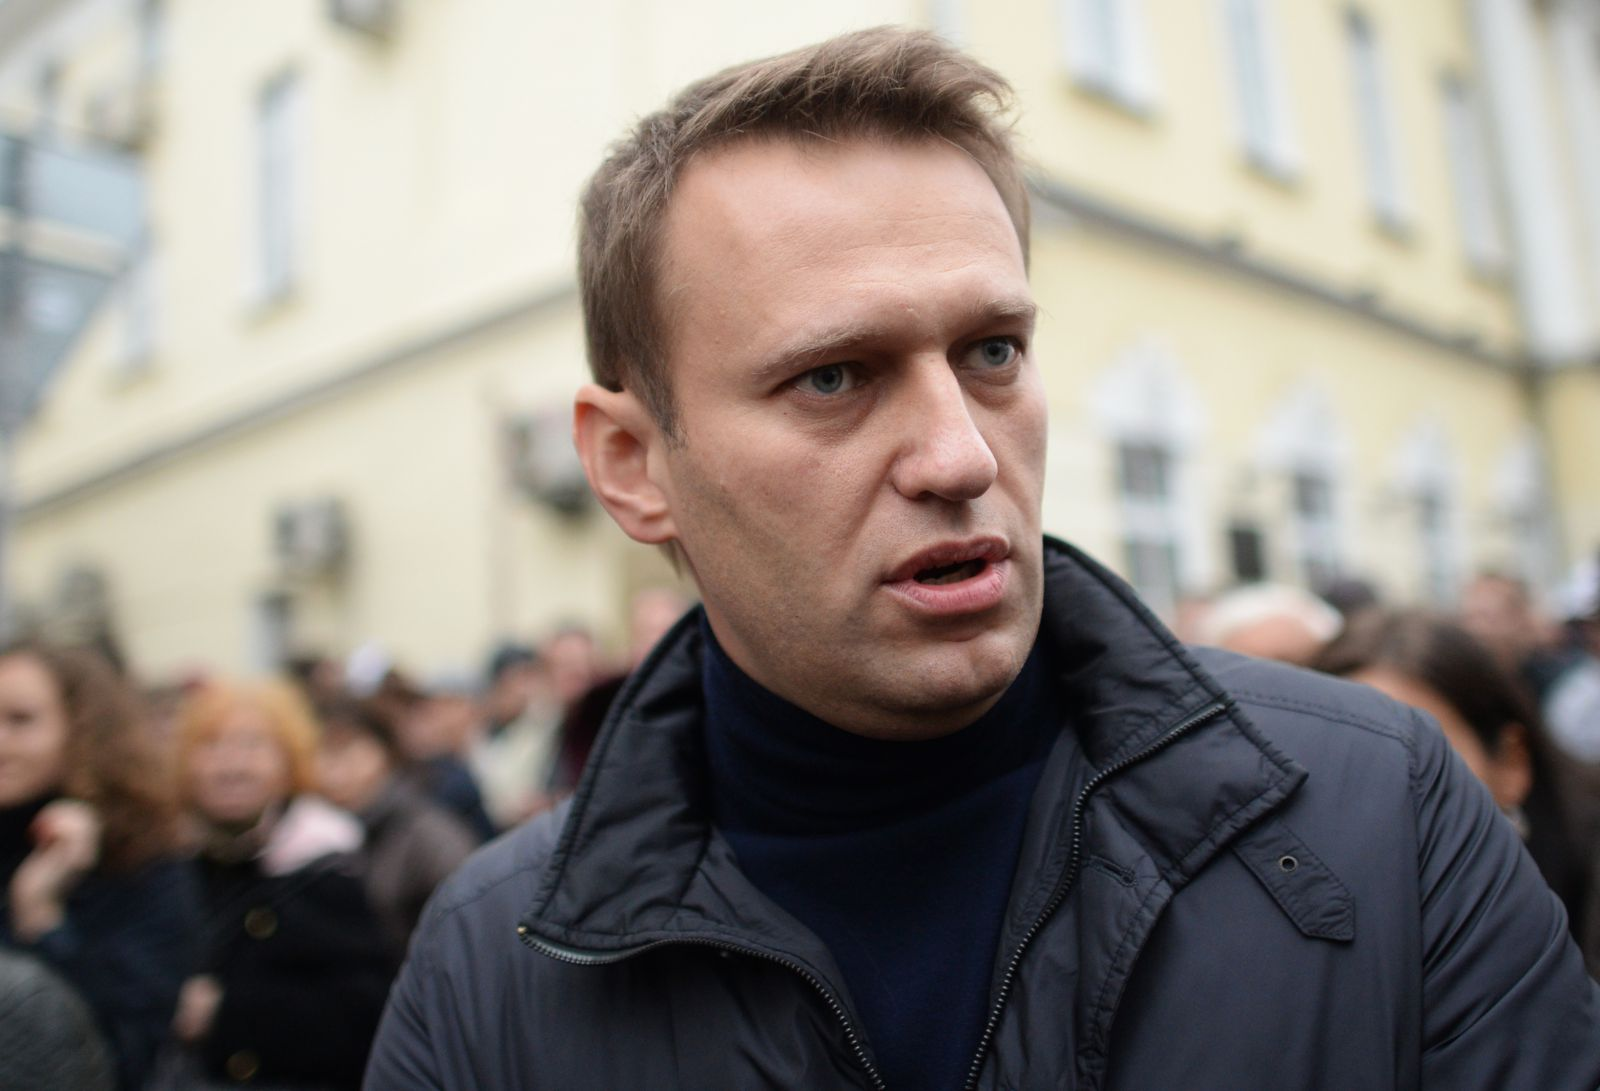 Navalny's apartment and accounts were seized